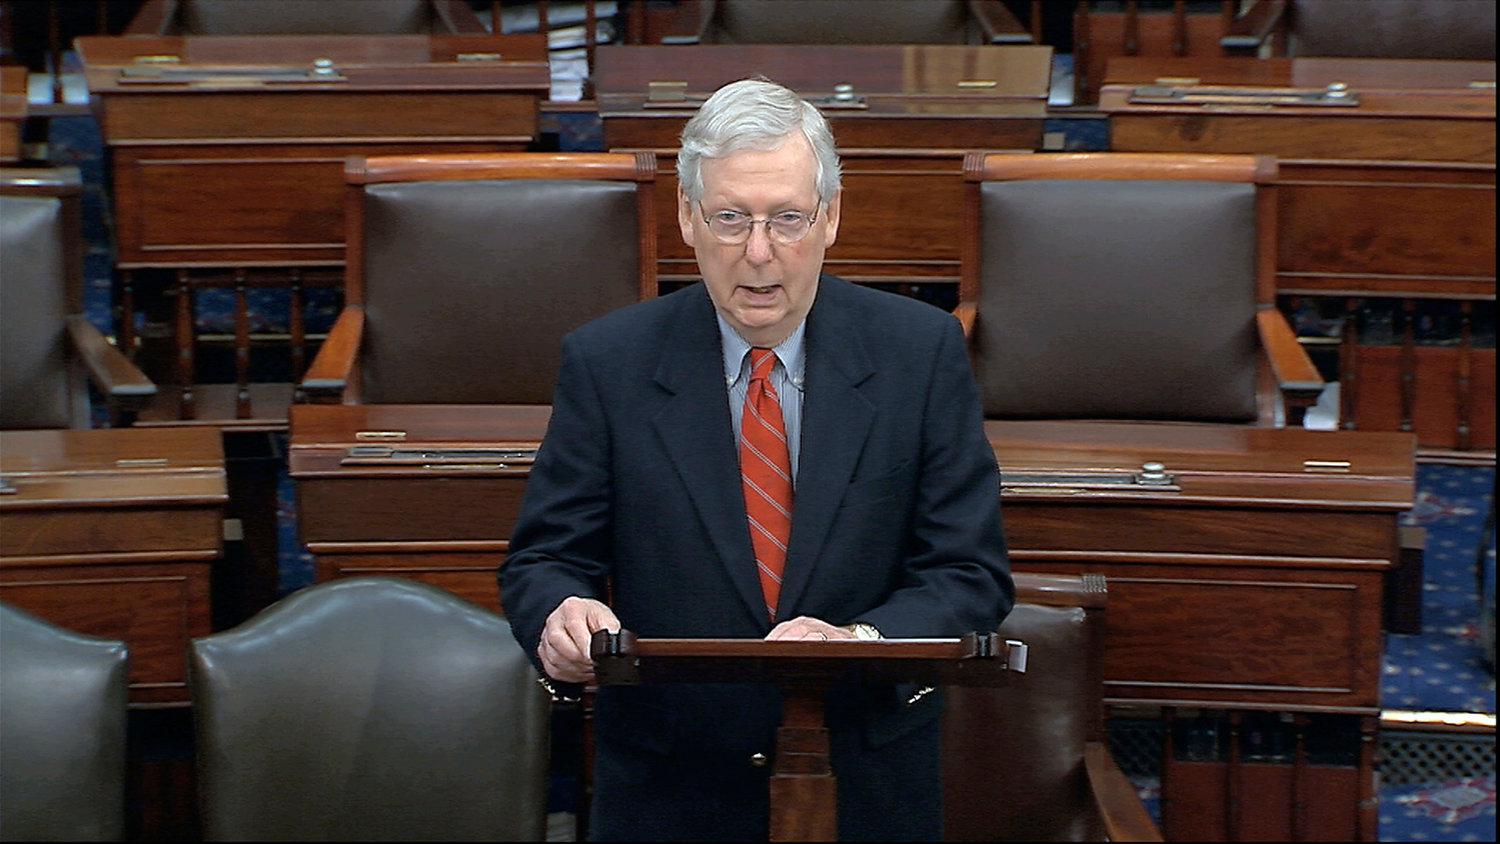 Senate Majority Leader Mitch McConnell, R-Ky., says churches, Christian schools and other nonprofit organizations will received access to federally guaranteed loans through the $2.2 trillion CARES Act. (Senate Television via AP)